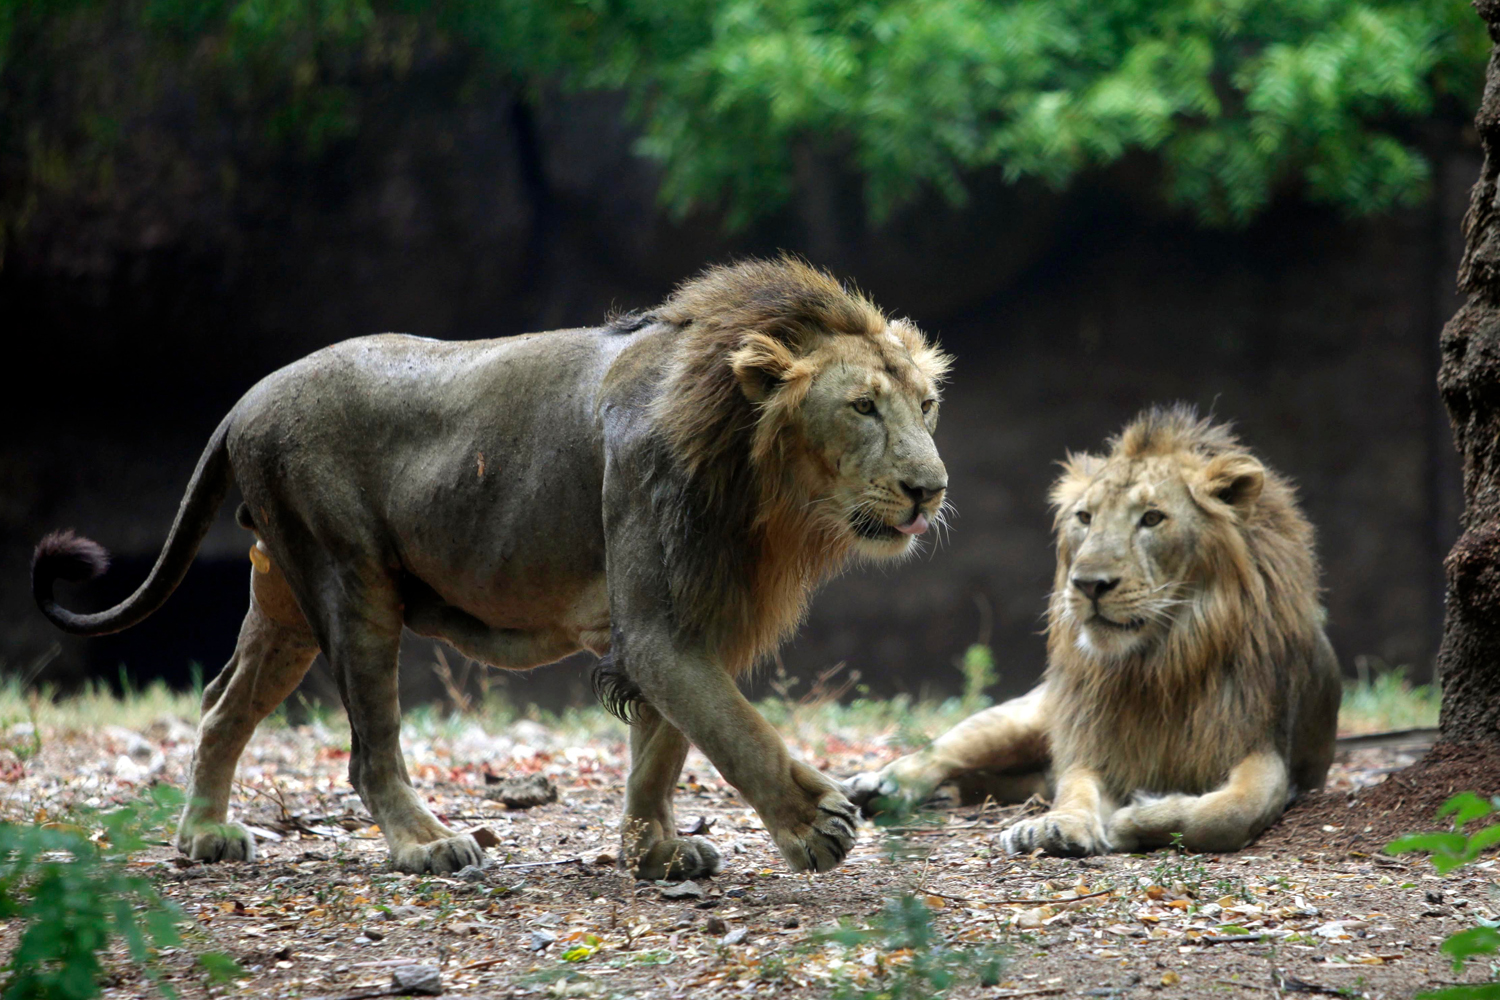 Lions Ram and Laxman rest in an enclosure at the Nehru Zoological Park in Hyderabad, India